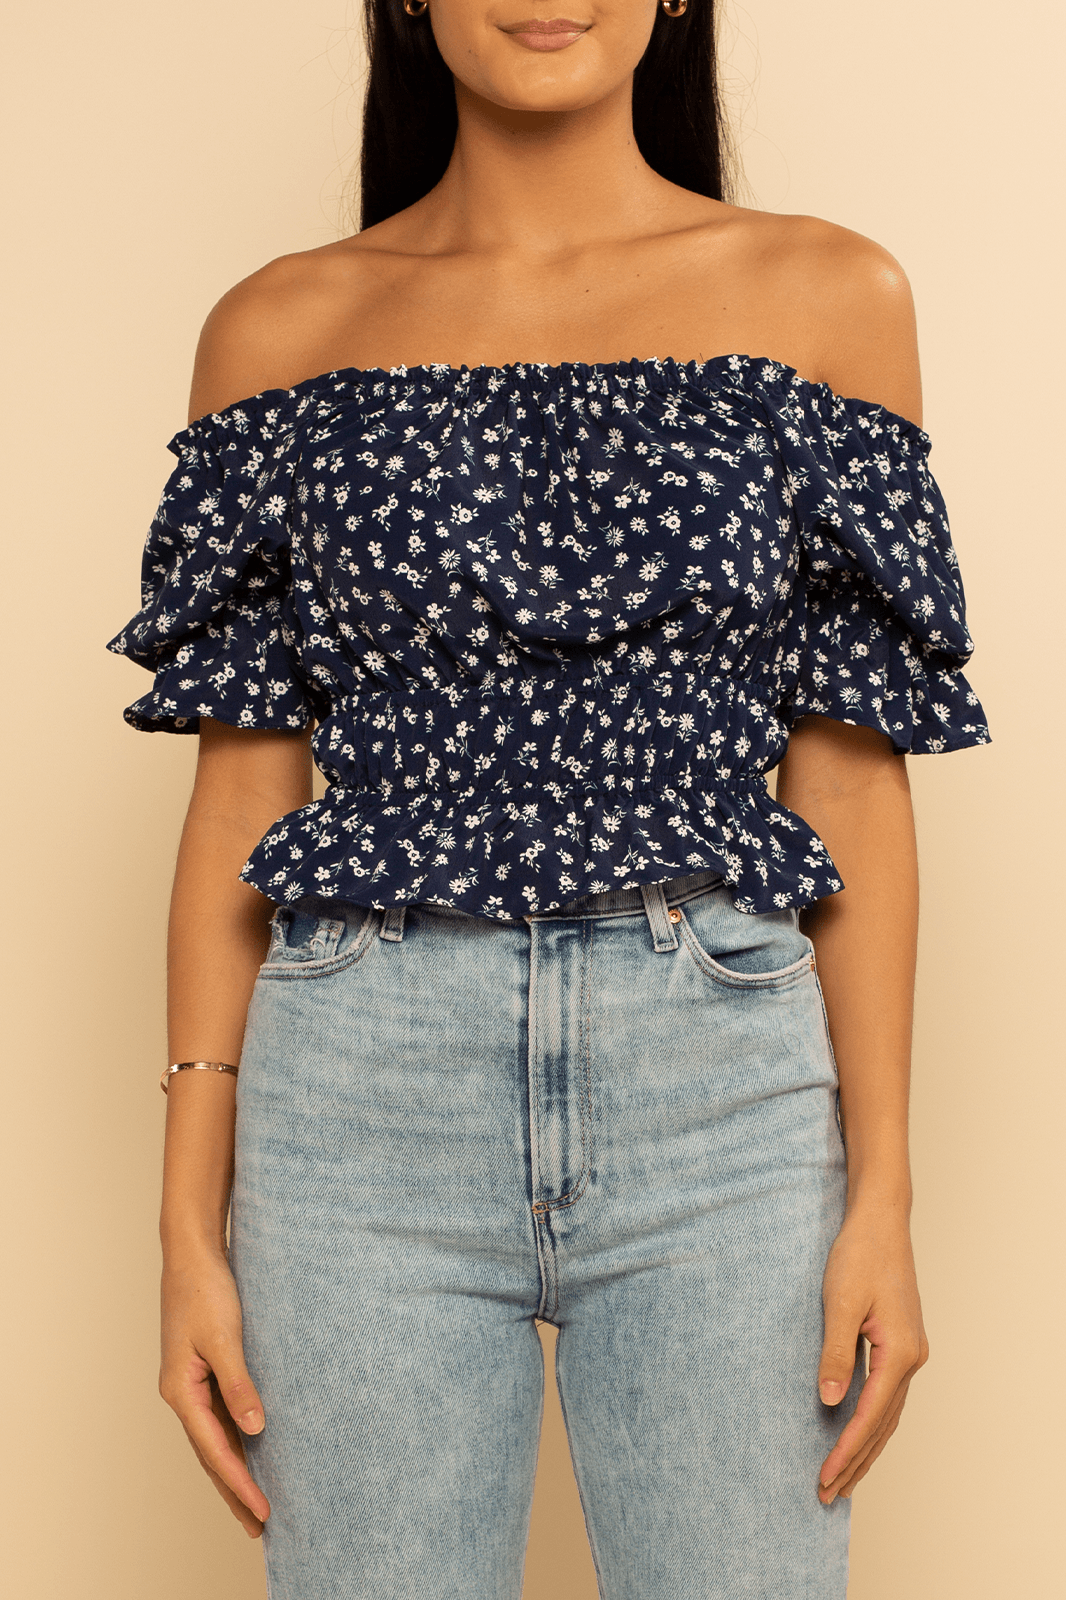 Croatia Ruffle Top - Navy Ditsy - Shore